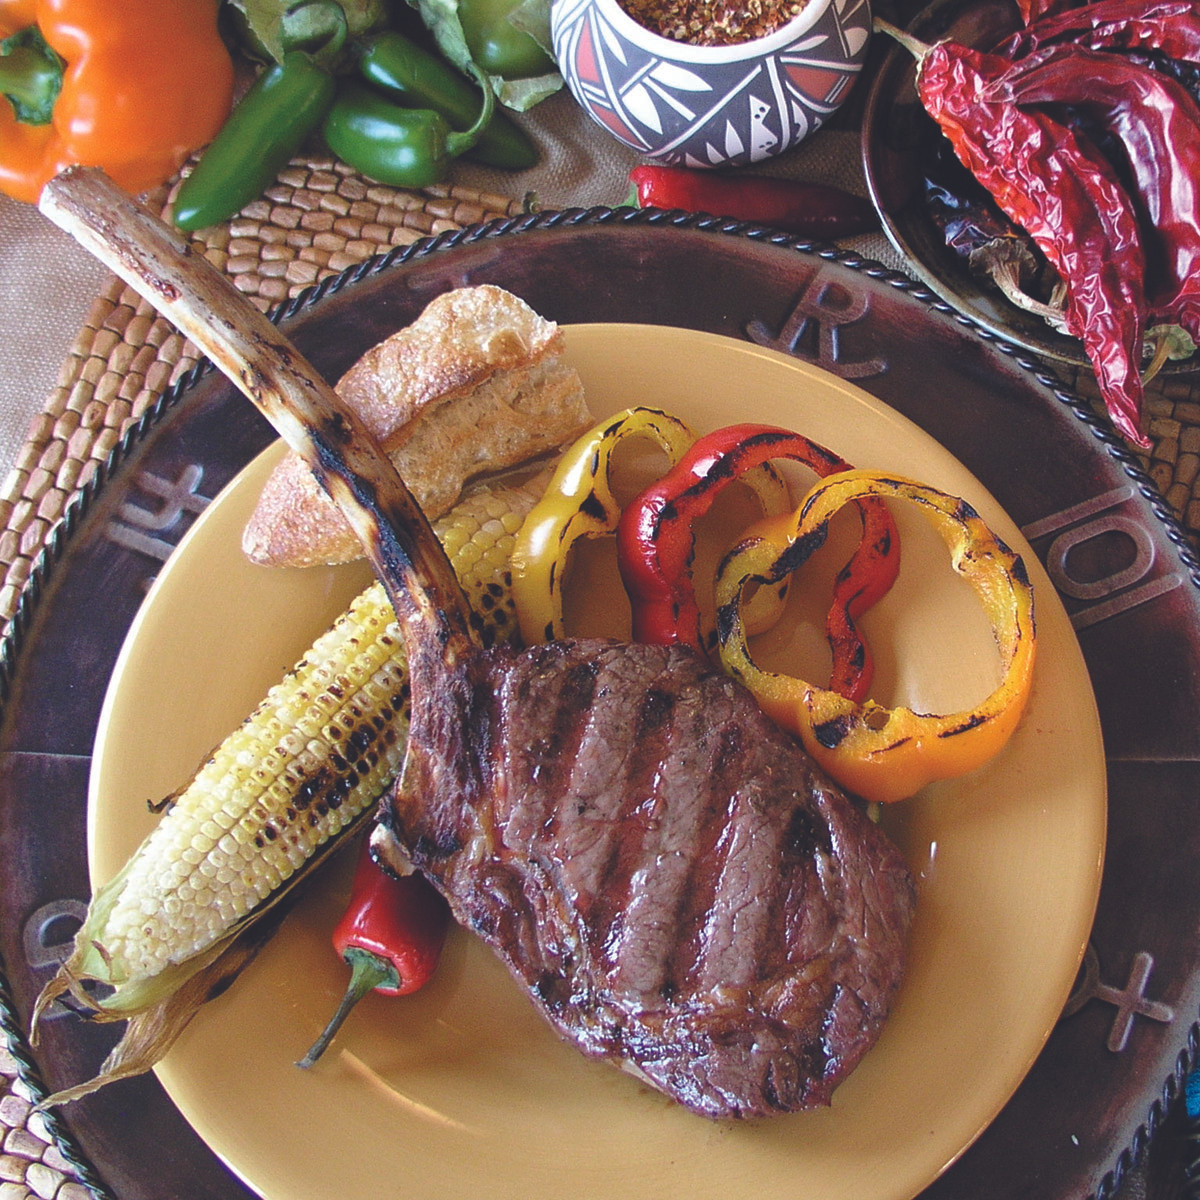 Why You Should Purchase Buffalo Meat